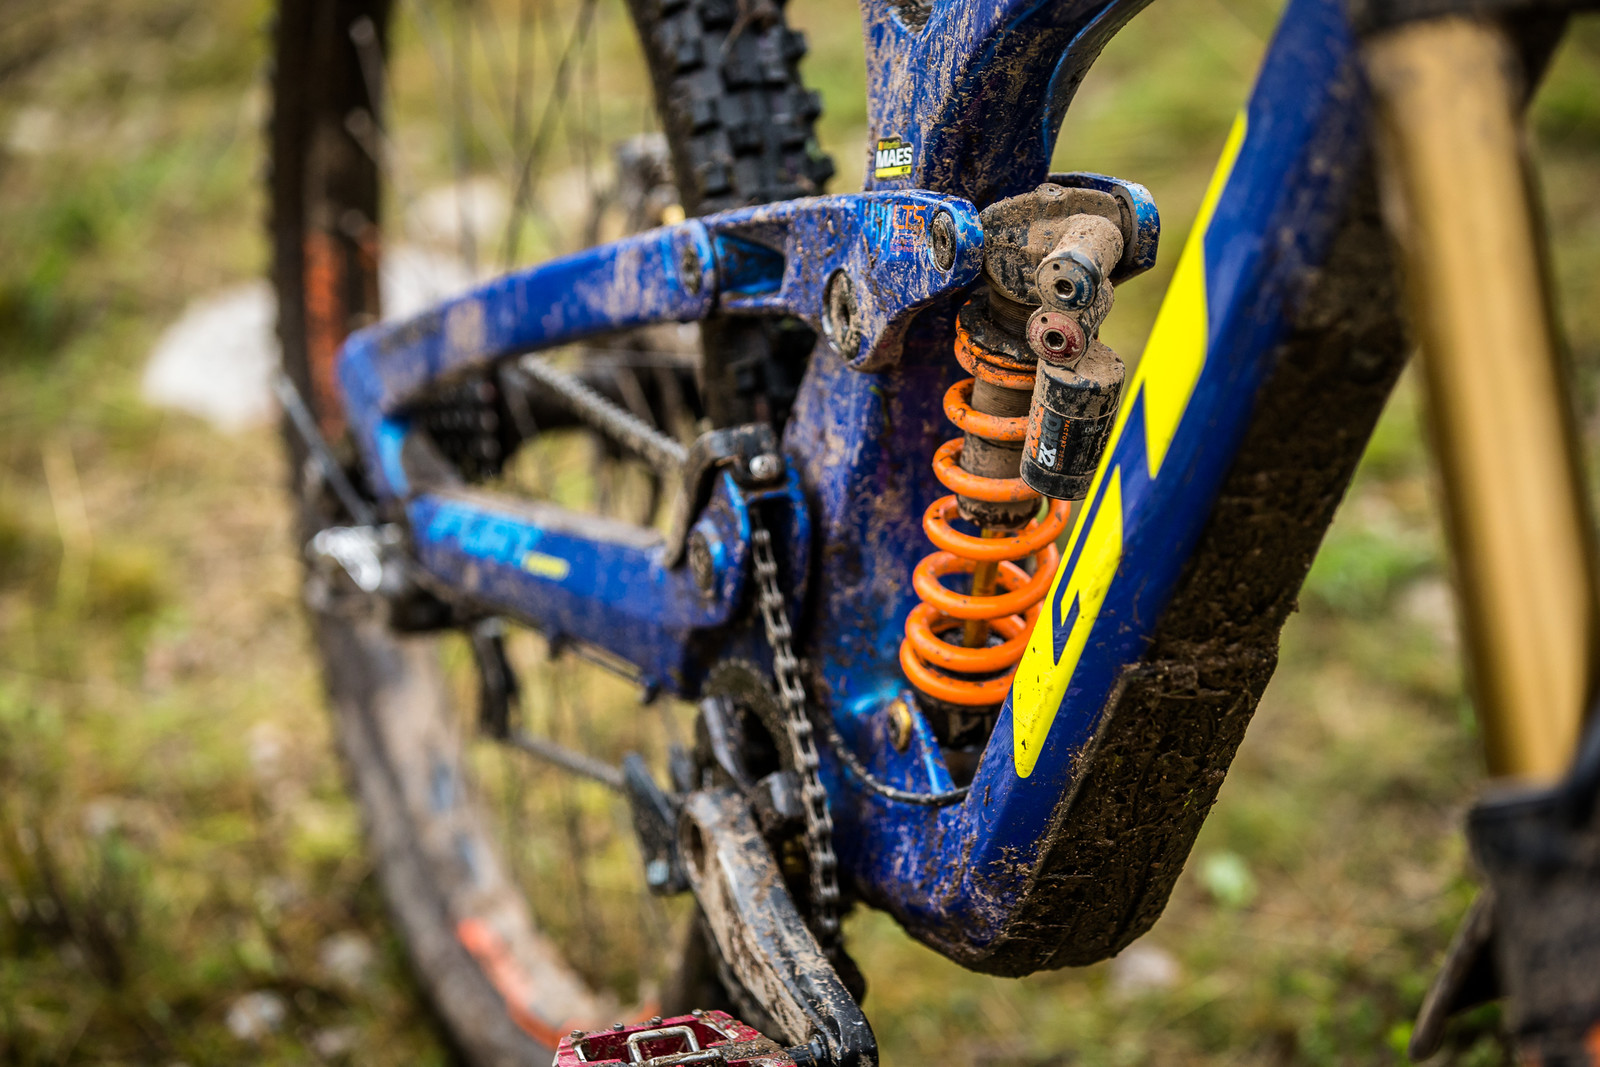 FOX DHX2 Shock - WINNING BIKE - Martin Maes' GT Fury - Mountain Biking Pictures - Vital MTB